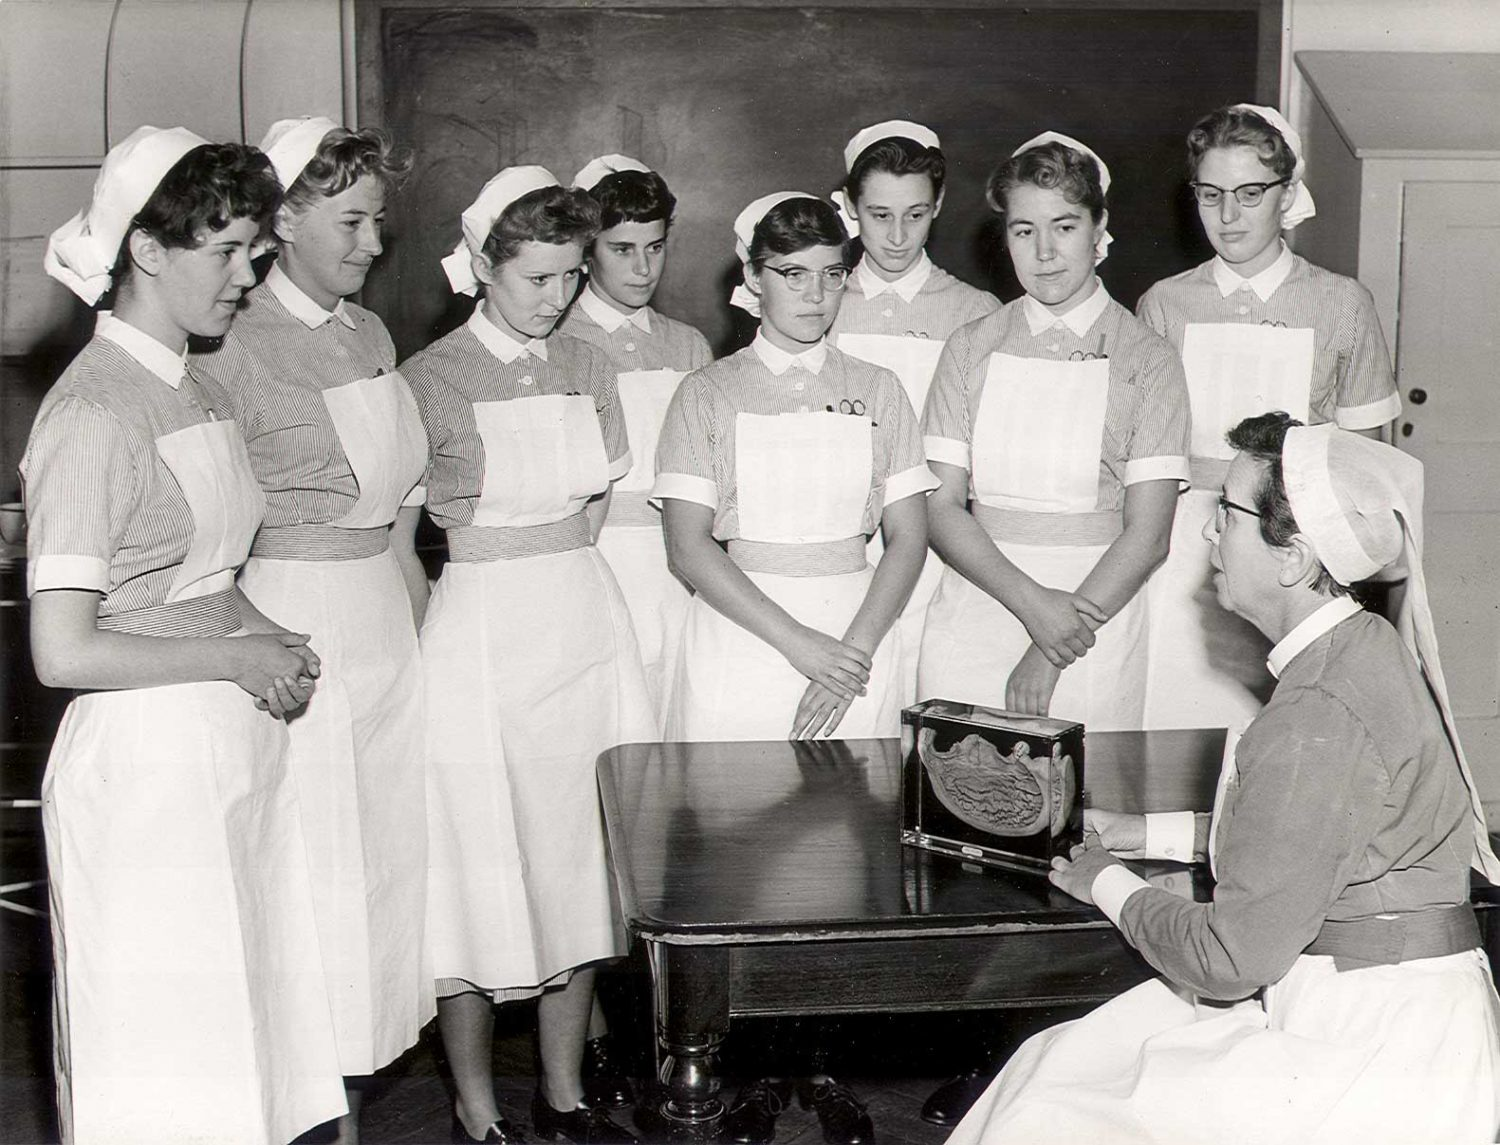 """SBHX8/567 """"Winifred Hector teaching student nurses in uniform, c.1960. Hector seated at right with gastric specimen on table. Eight second year student nurses [indicated by their belts] standing, from the Oct 1958 set."""" 1960 Nursing Mirror"""